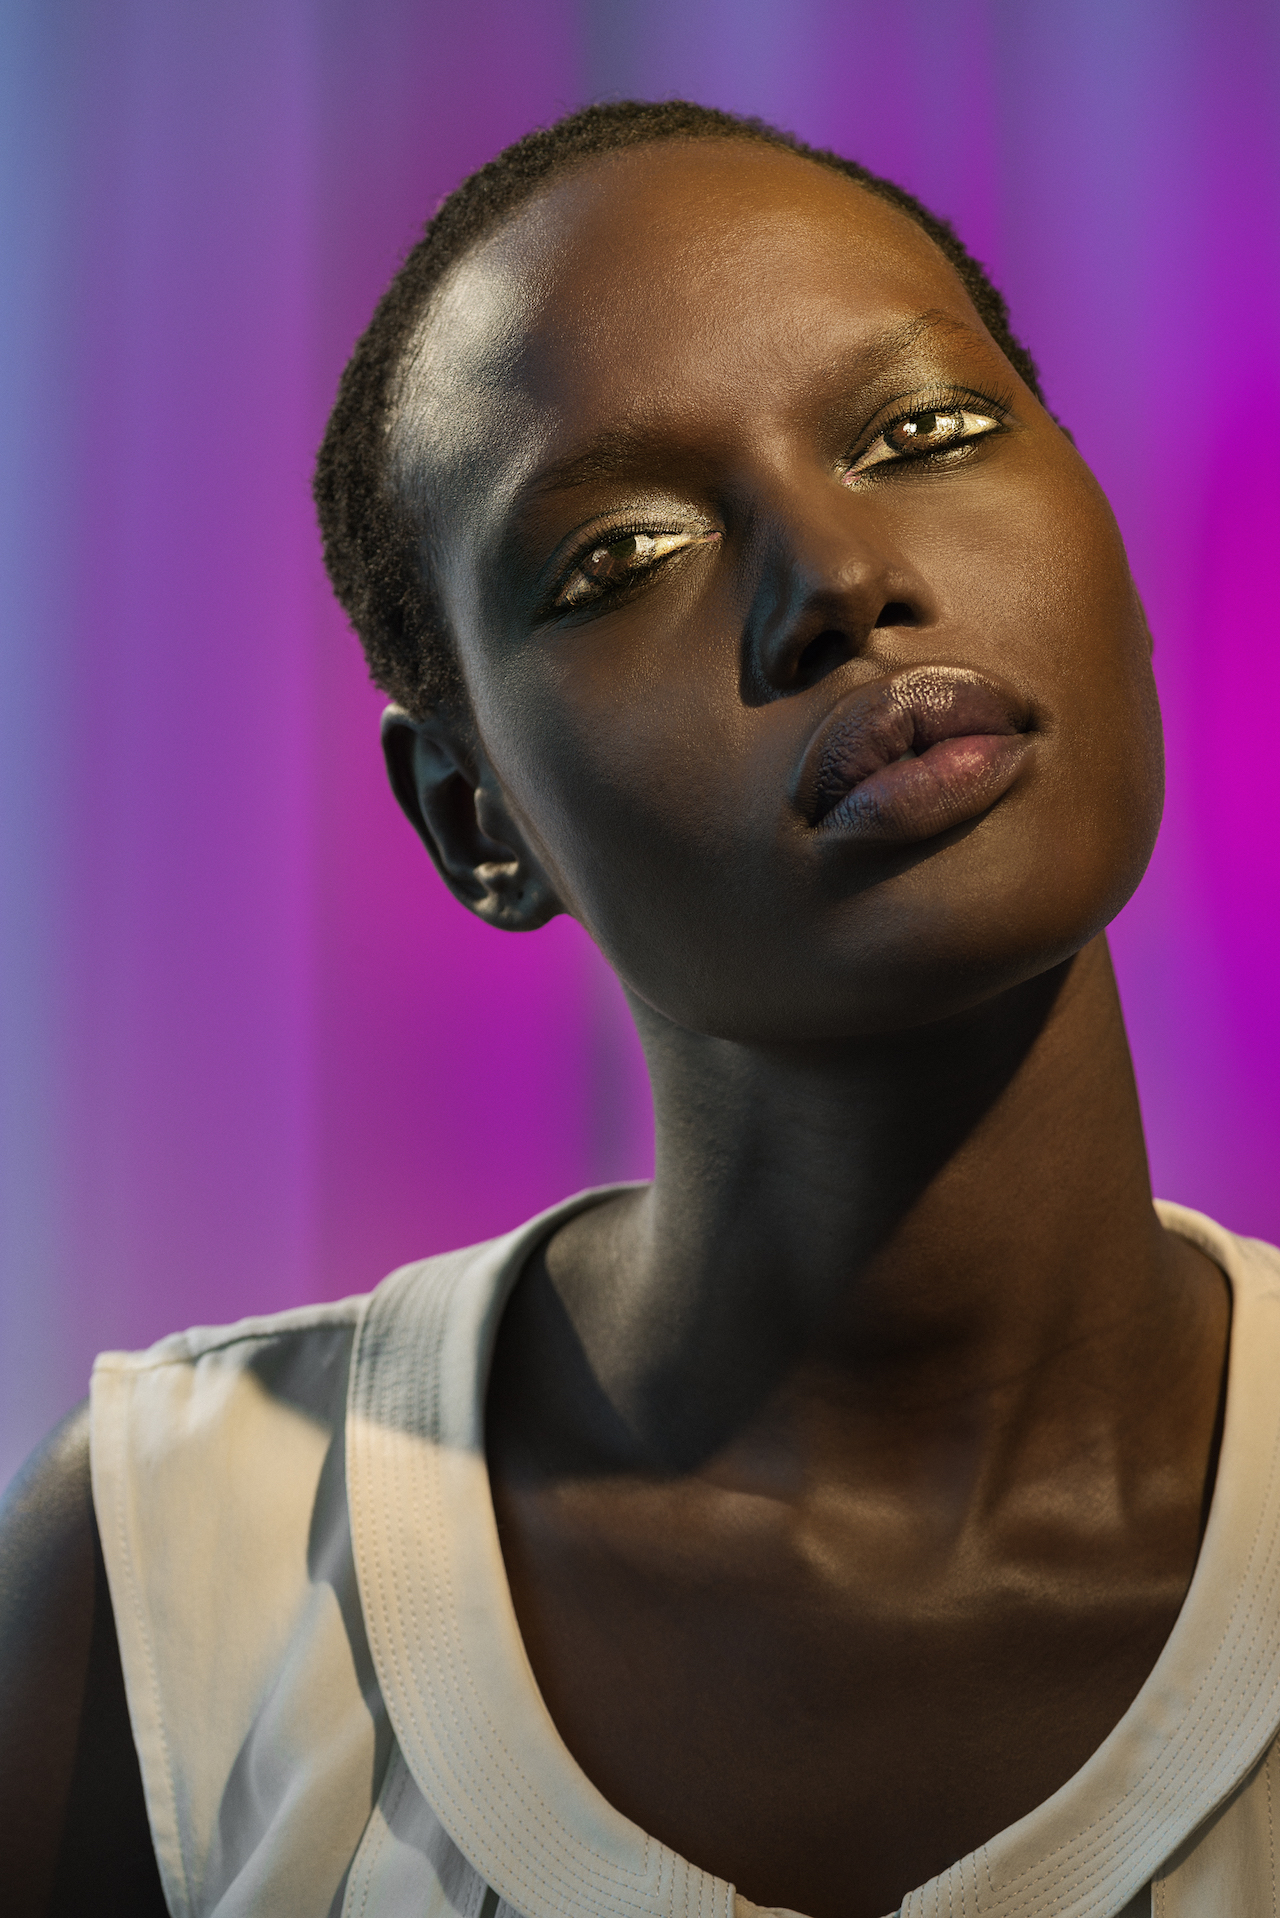 """Laurie Simmons, """"How We See/Ajak (Violet)"""" (2015), pigment print, 70 x 48 inches (© Laurie Simmons, courtesy the artist and Salon 94)"""